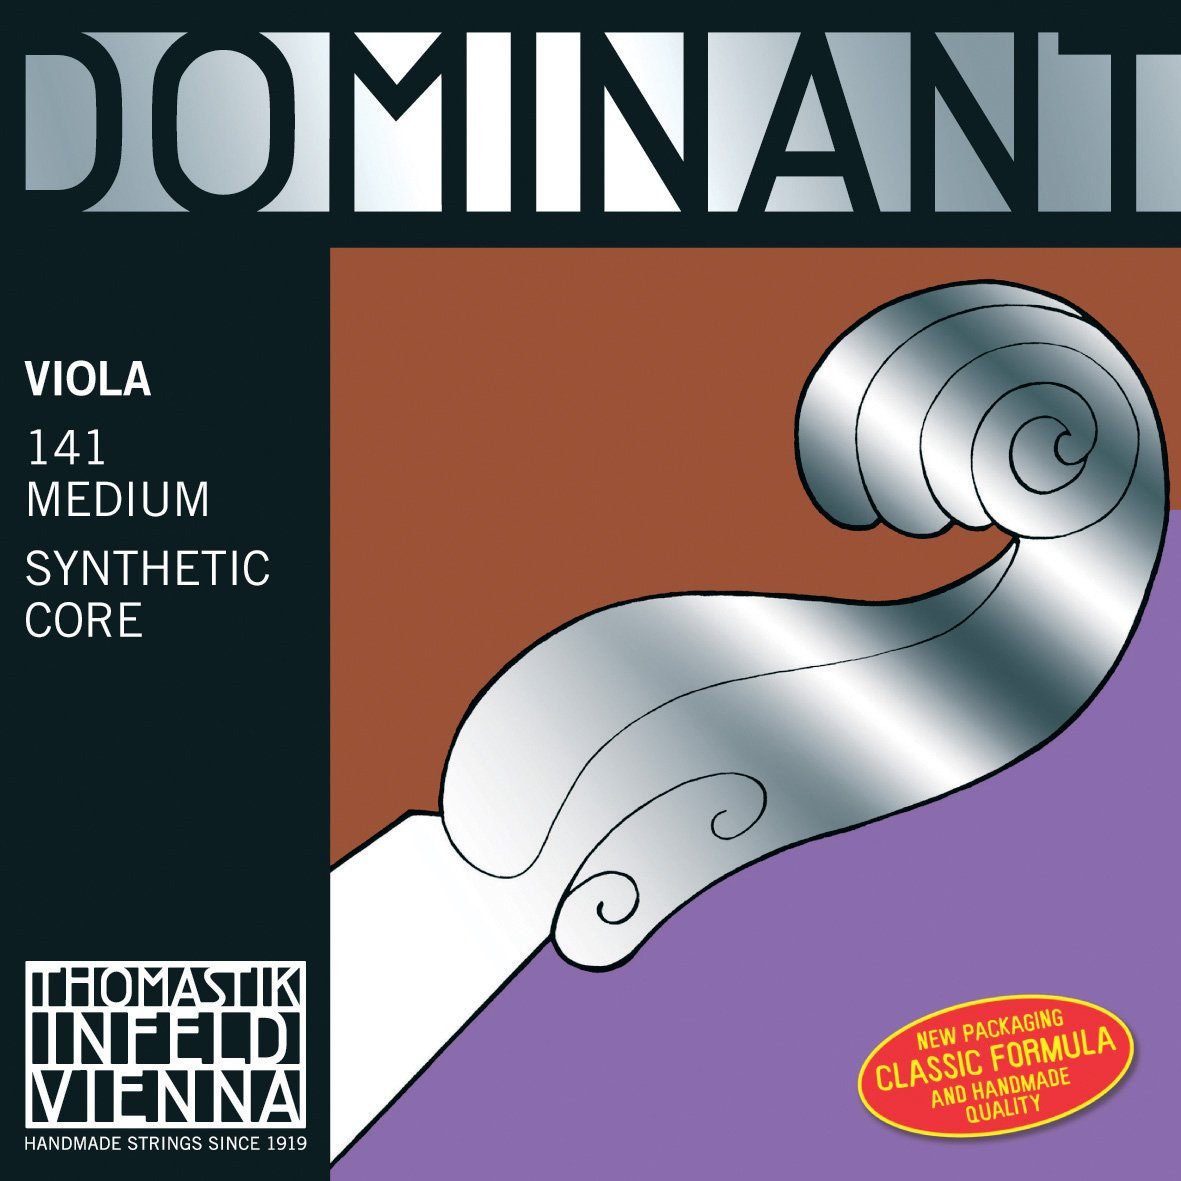 Thomastik-Infeld 136 Dominant Nylon Core Viola String, Medium Gauge, 4/4 Scale, A Dr Thomastik